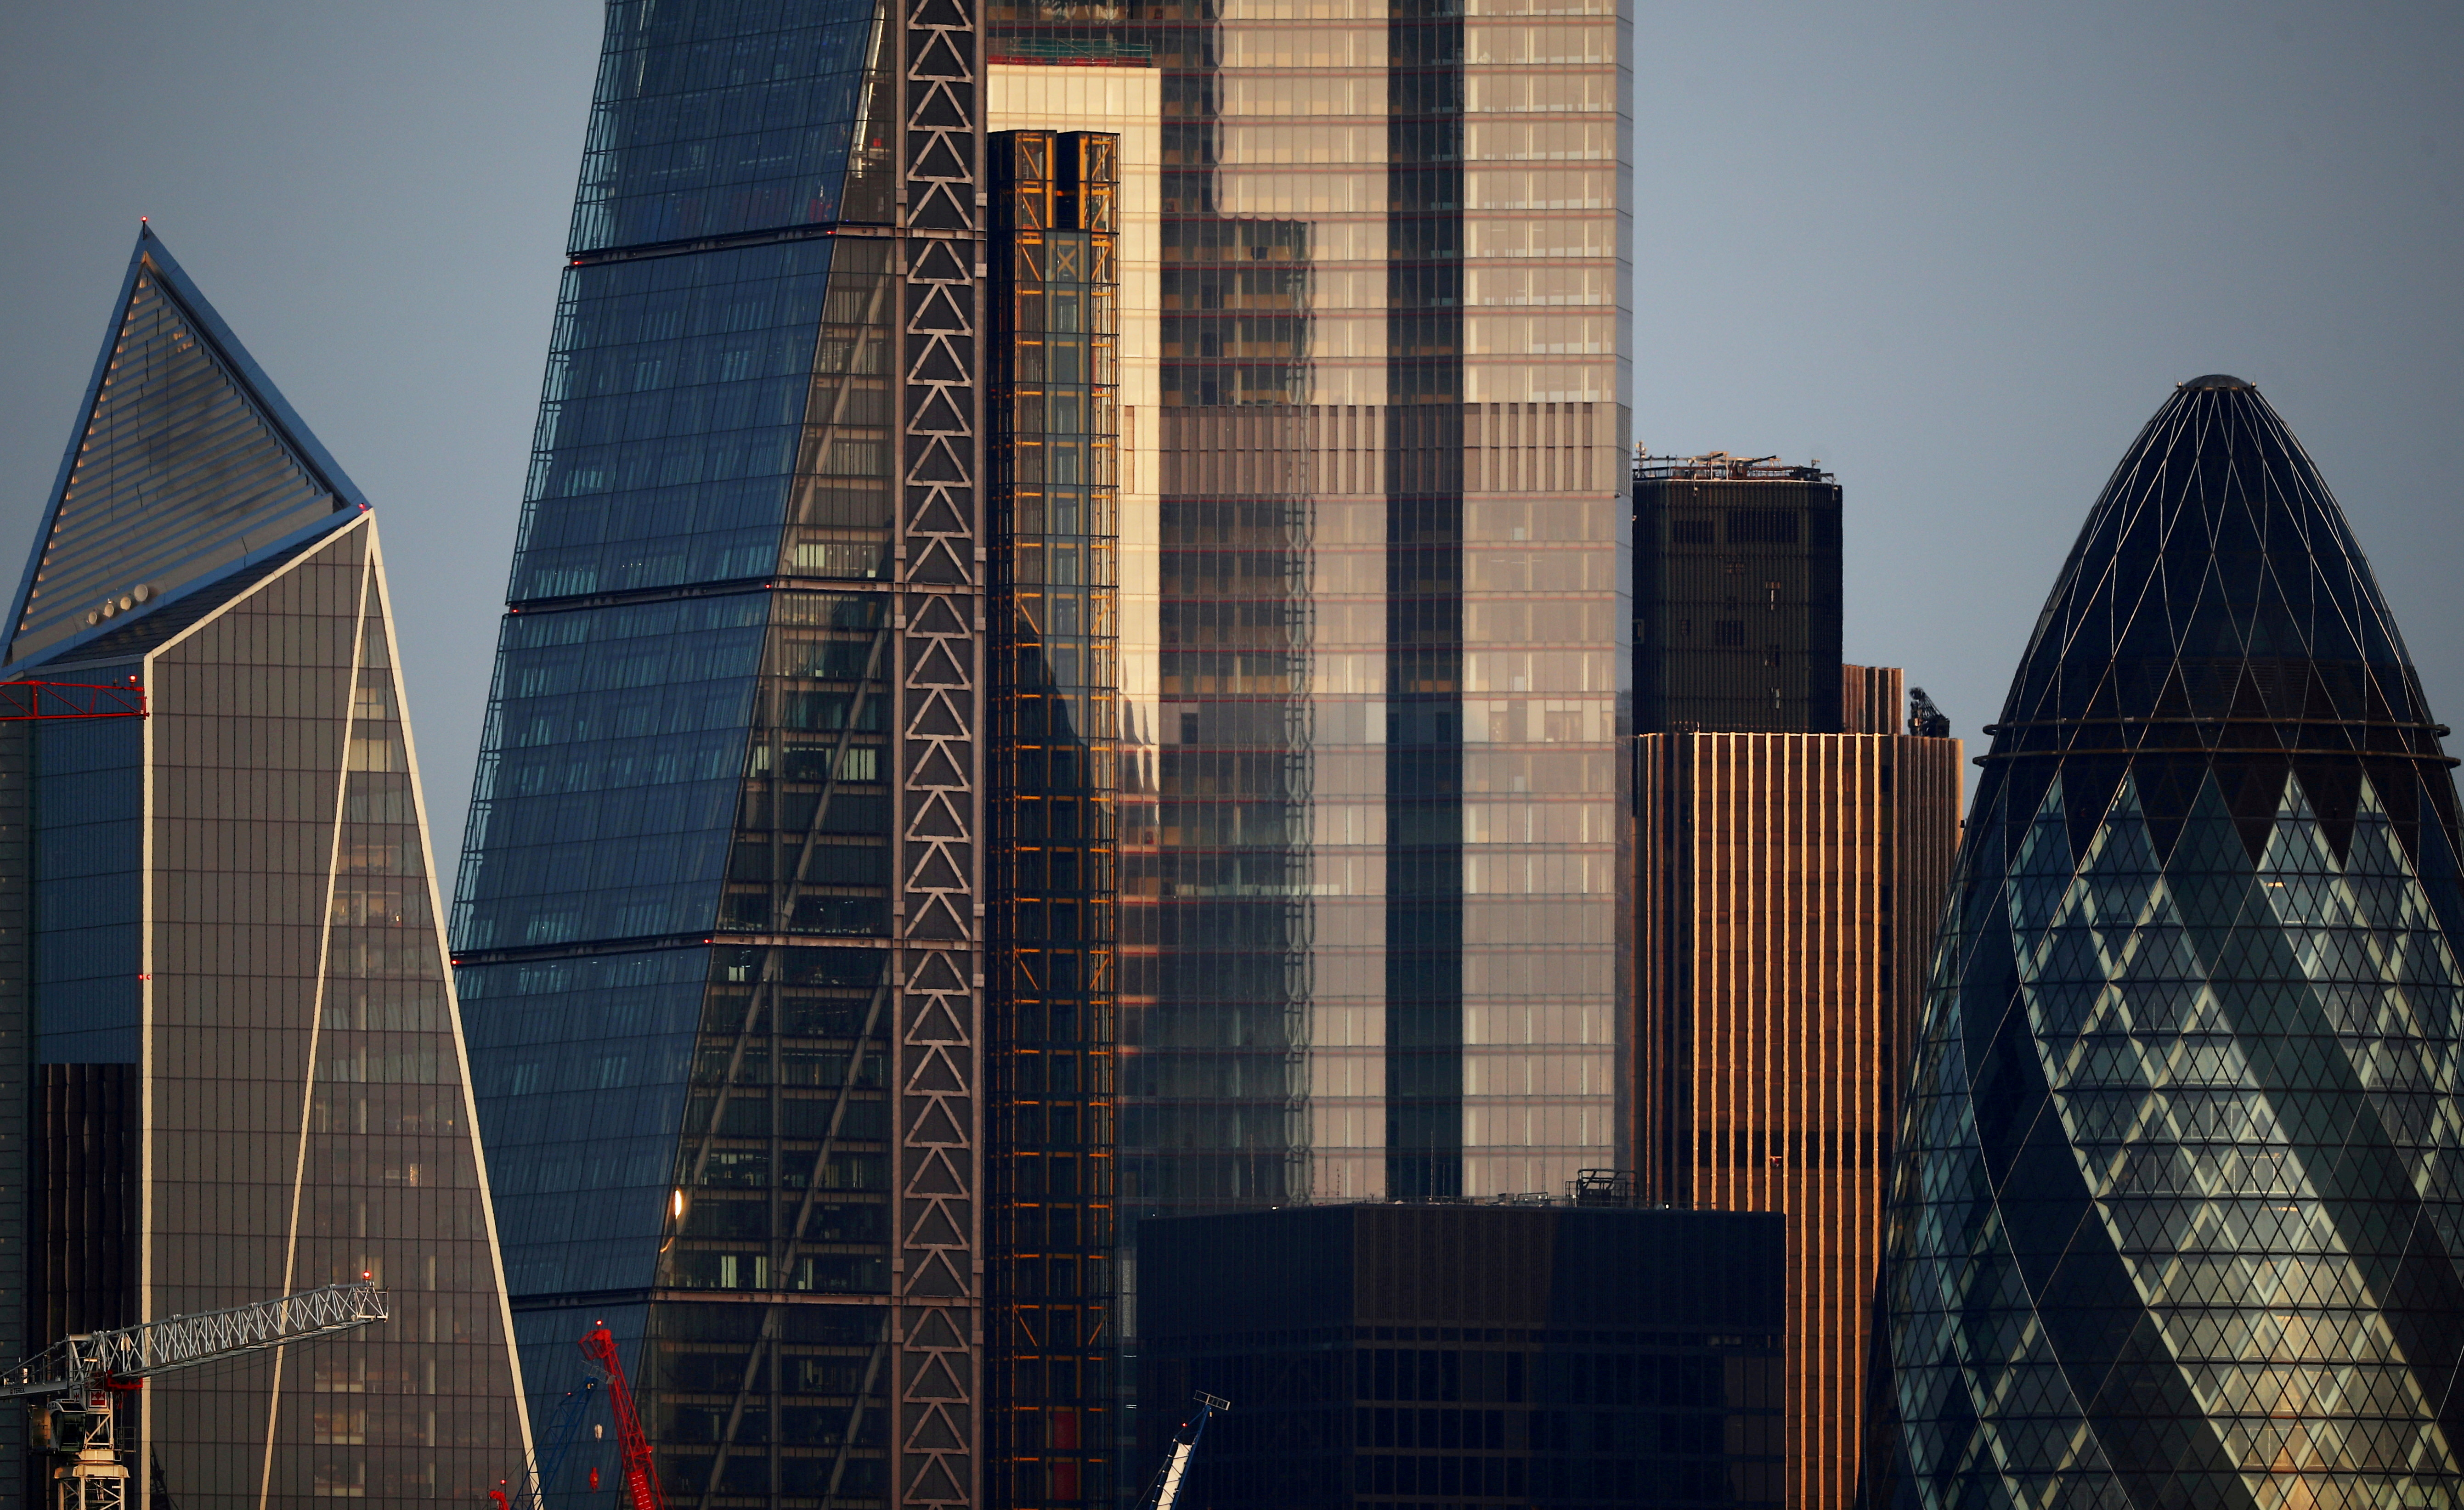 Skyscrapers in The City of London financial district are seen in London, Britain, September 14, 2020. REUTERS/Hannah McKay/File Photo